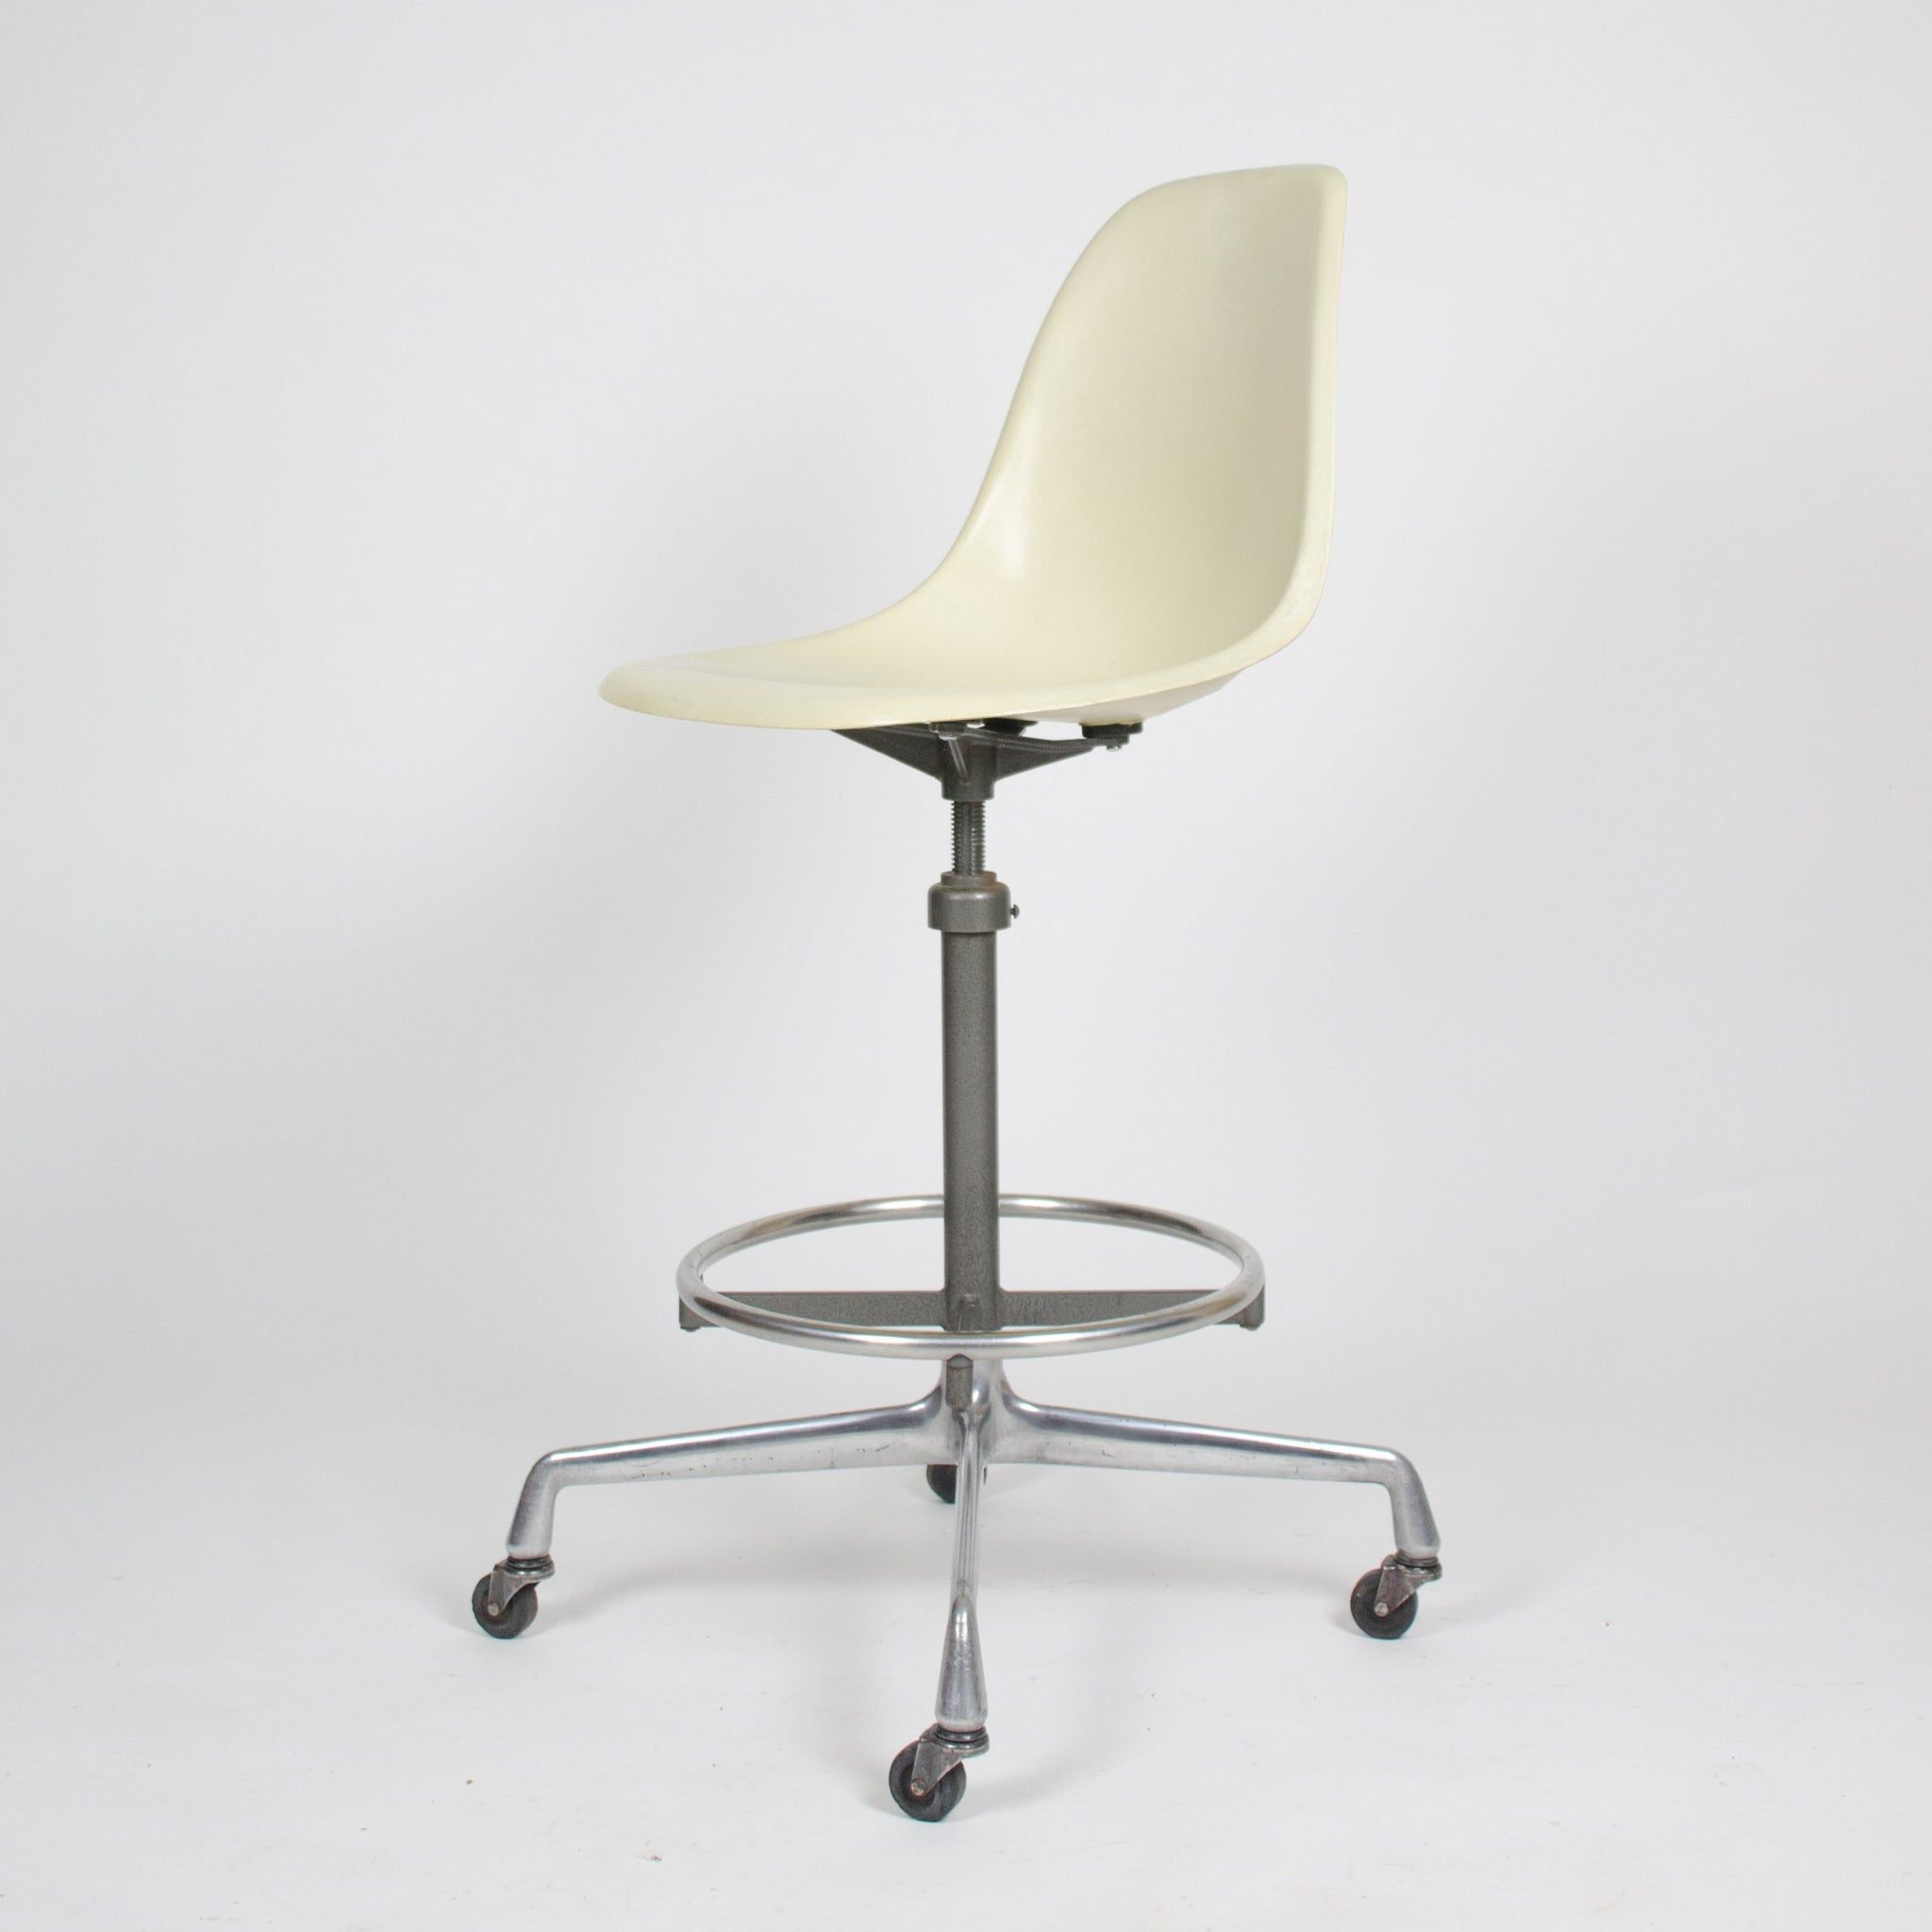 SOLD Eames Herman Miller Ivory Fiberglass Side Drafting Chair